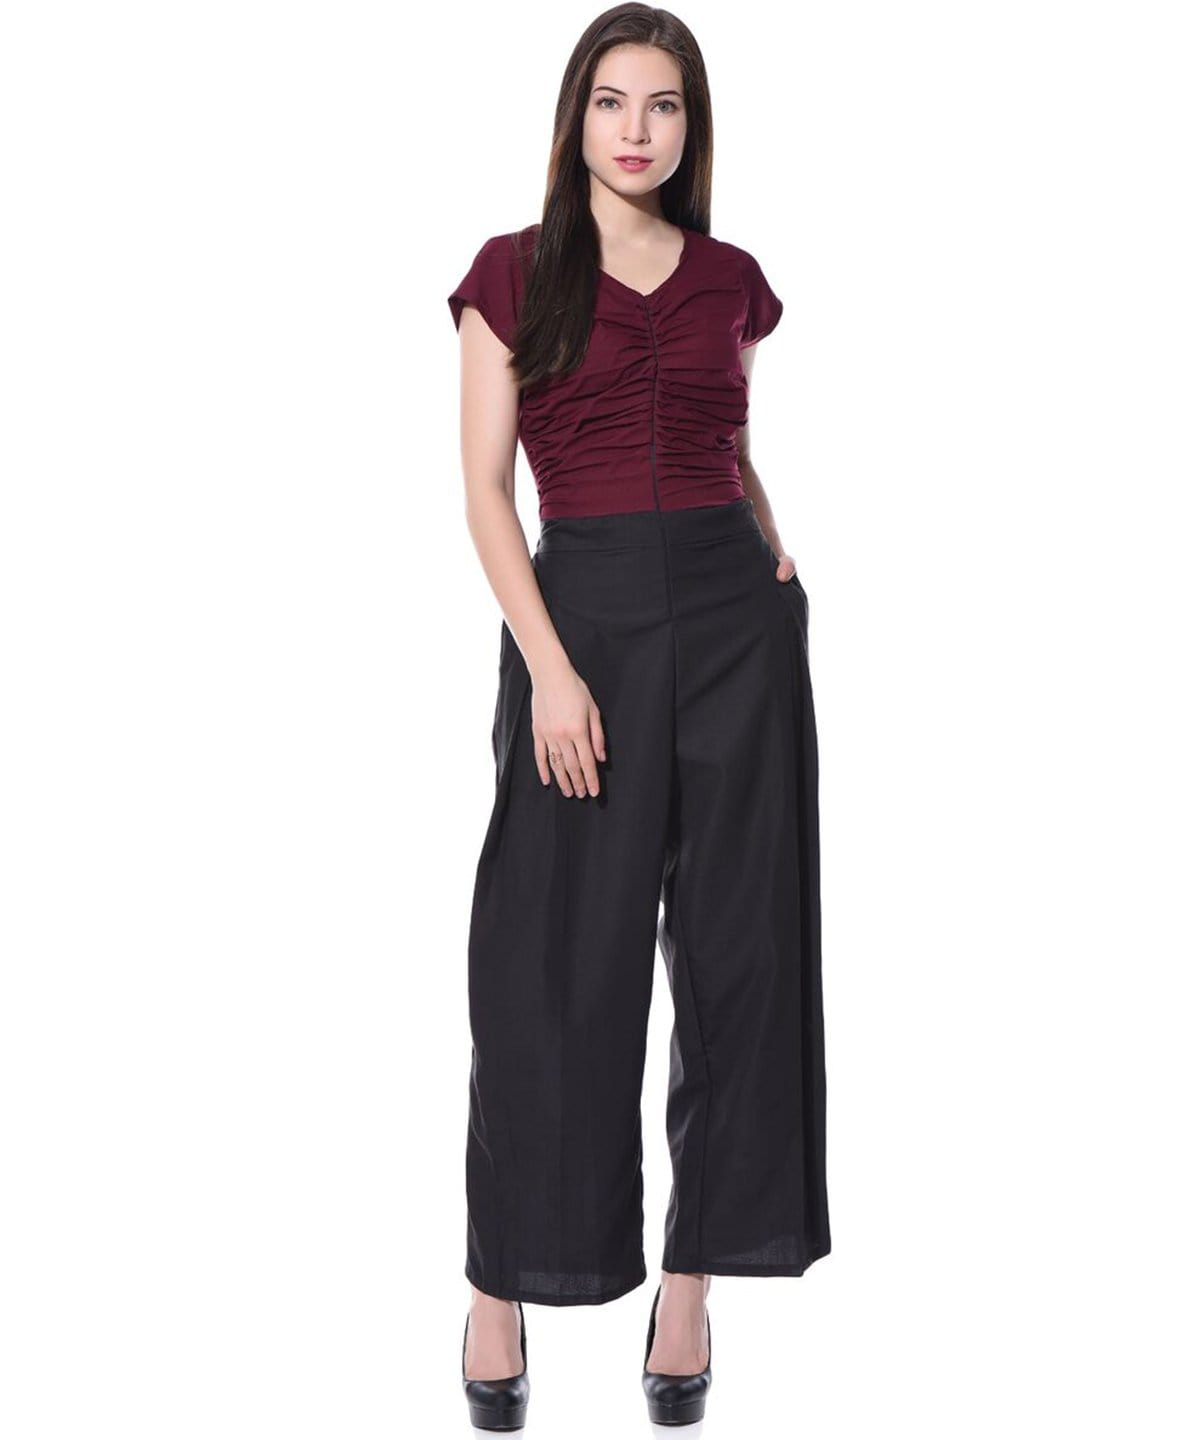 Colorblock Maroon & Black Jumpsuit - Uptownie